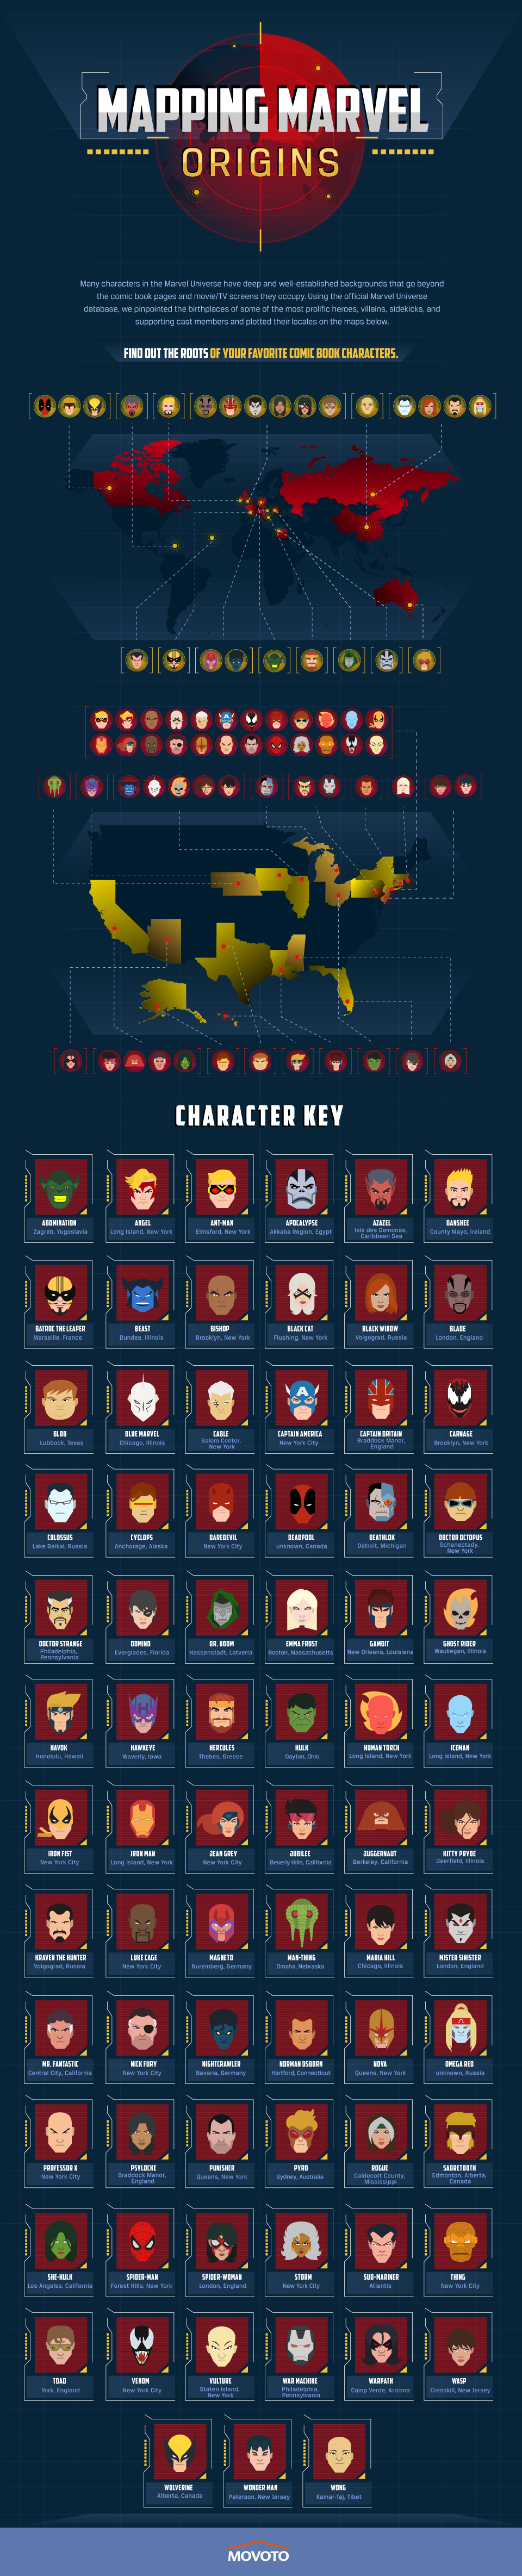 Mapping Marvel infographic